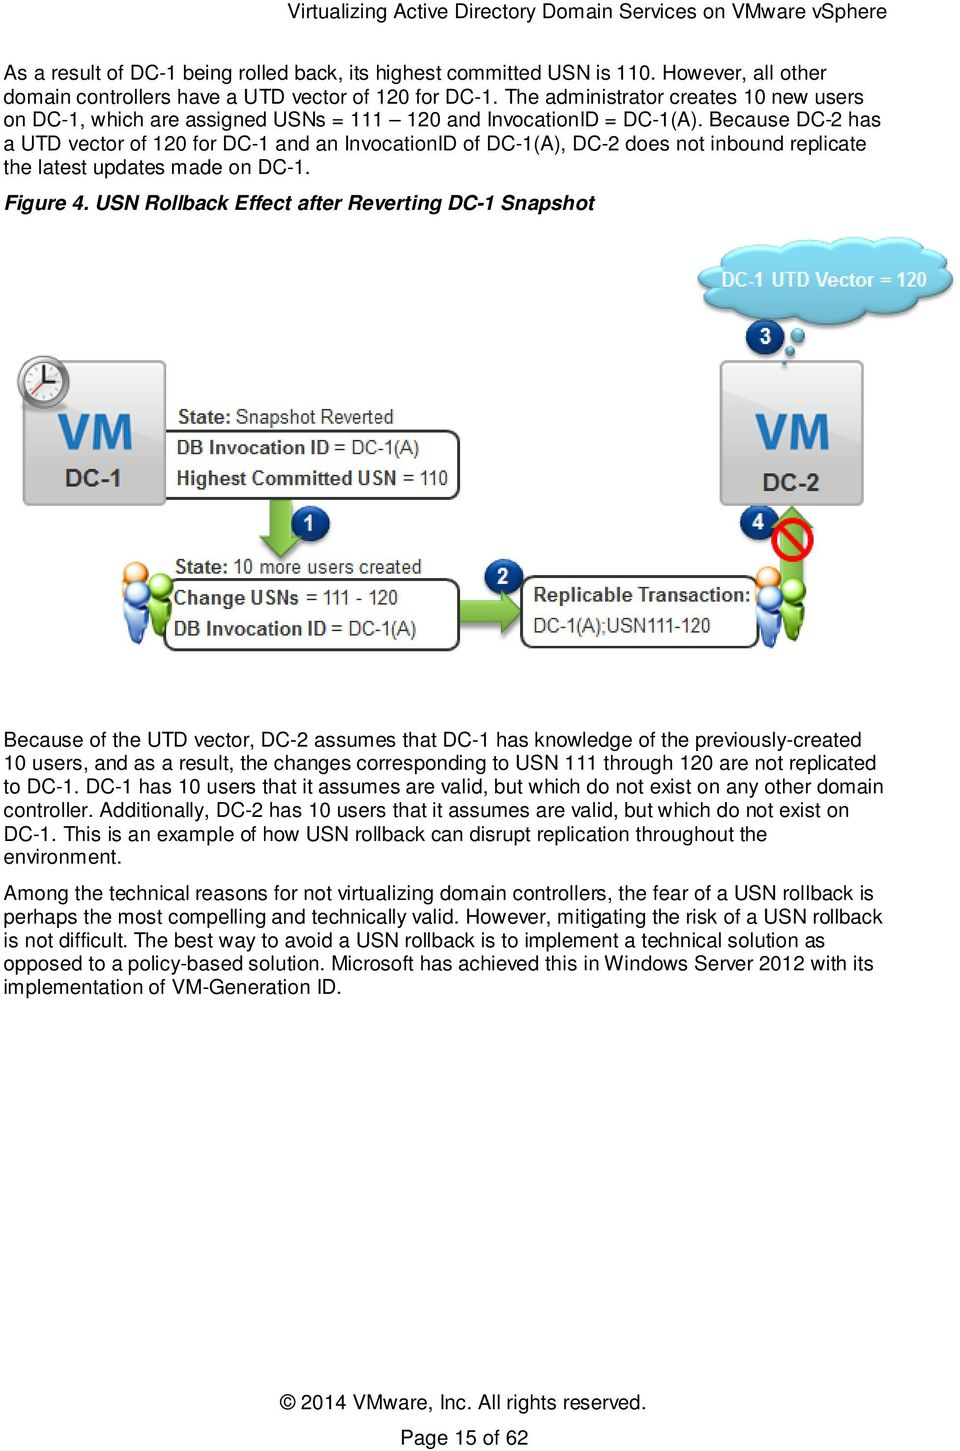 Virtualizing Active Directory Domain Services On VMware